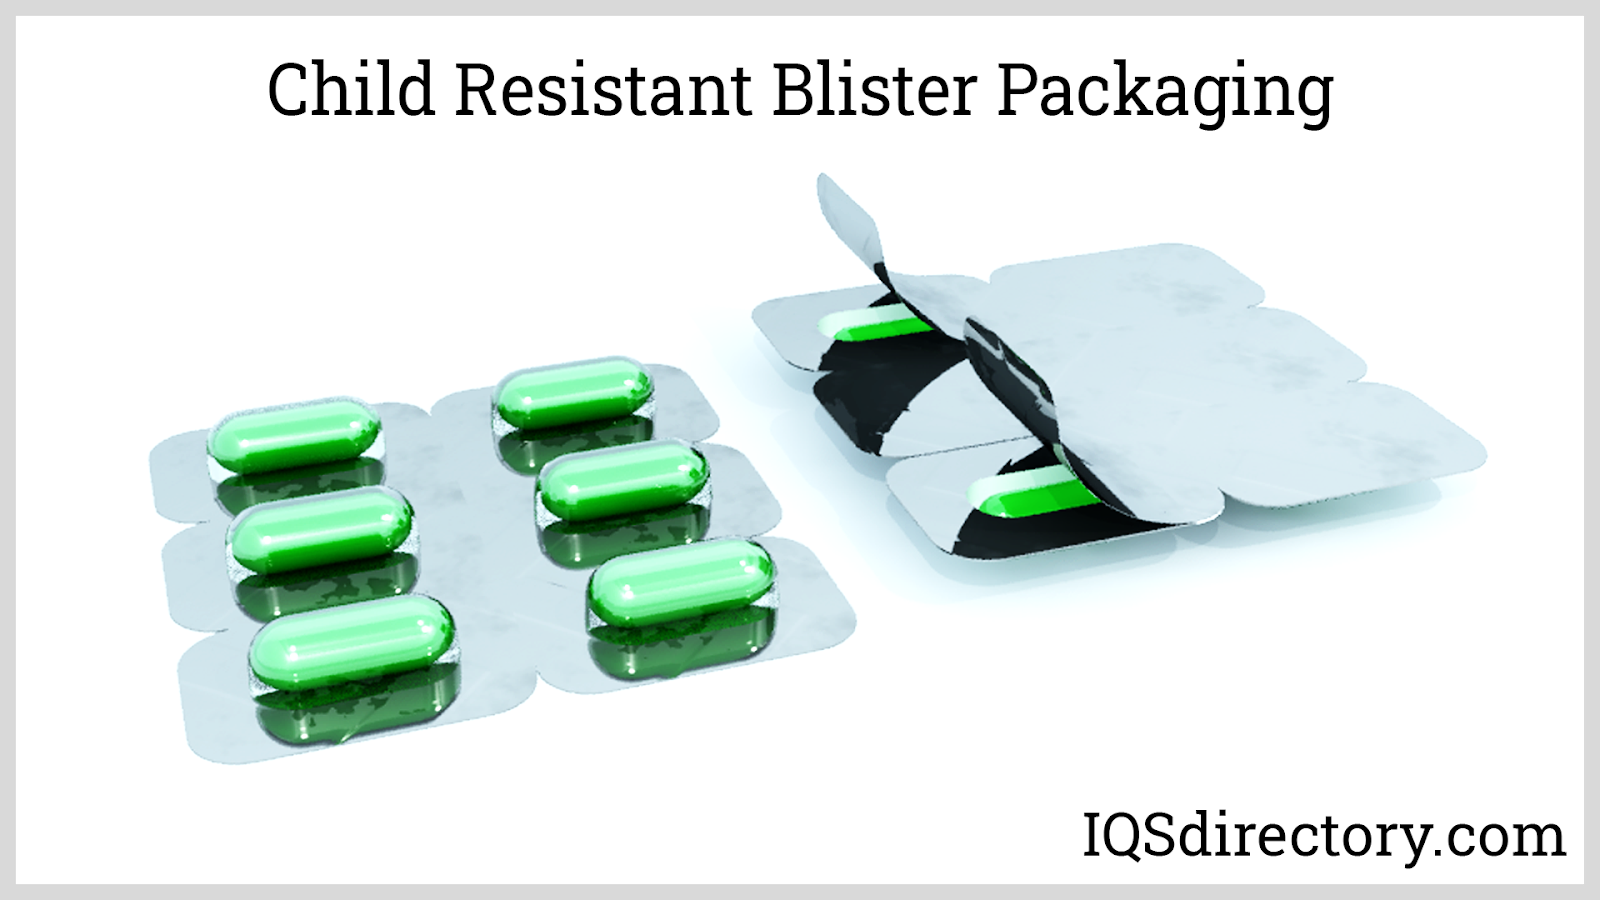 Child Resistant Blister Packaging